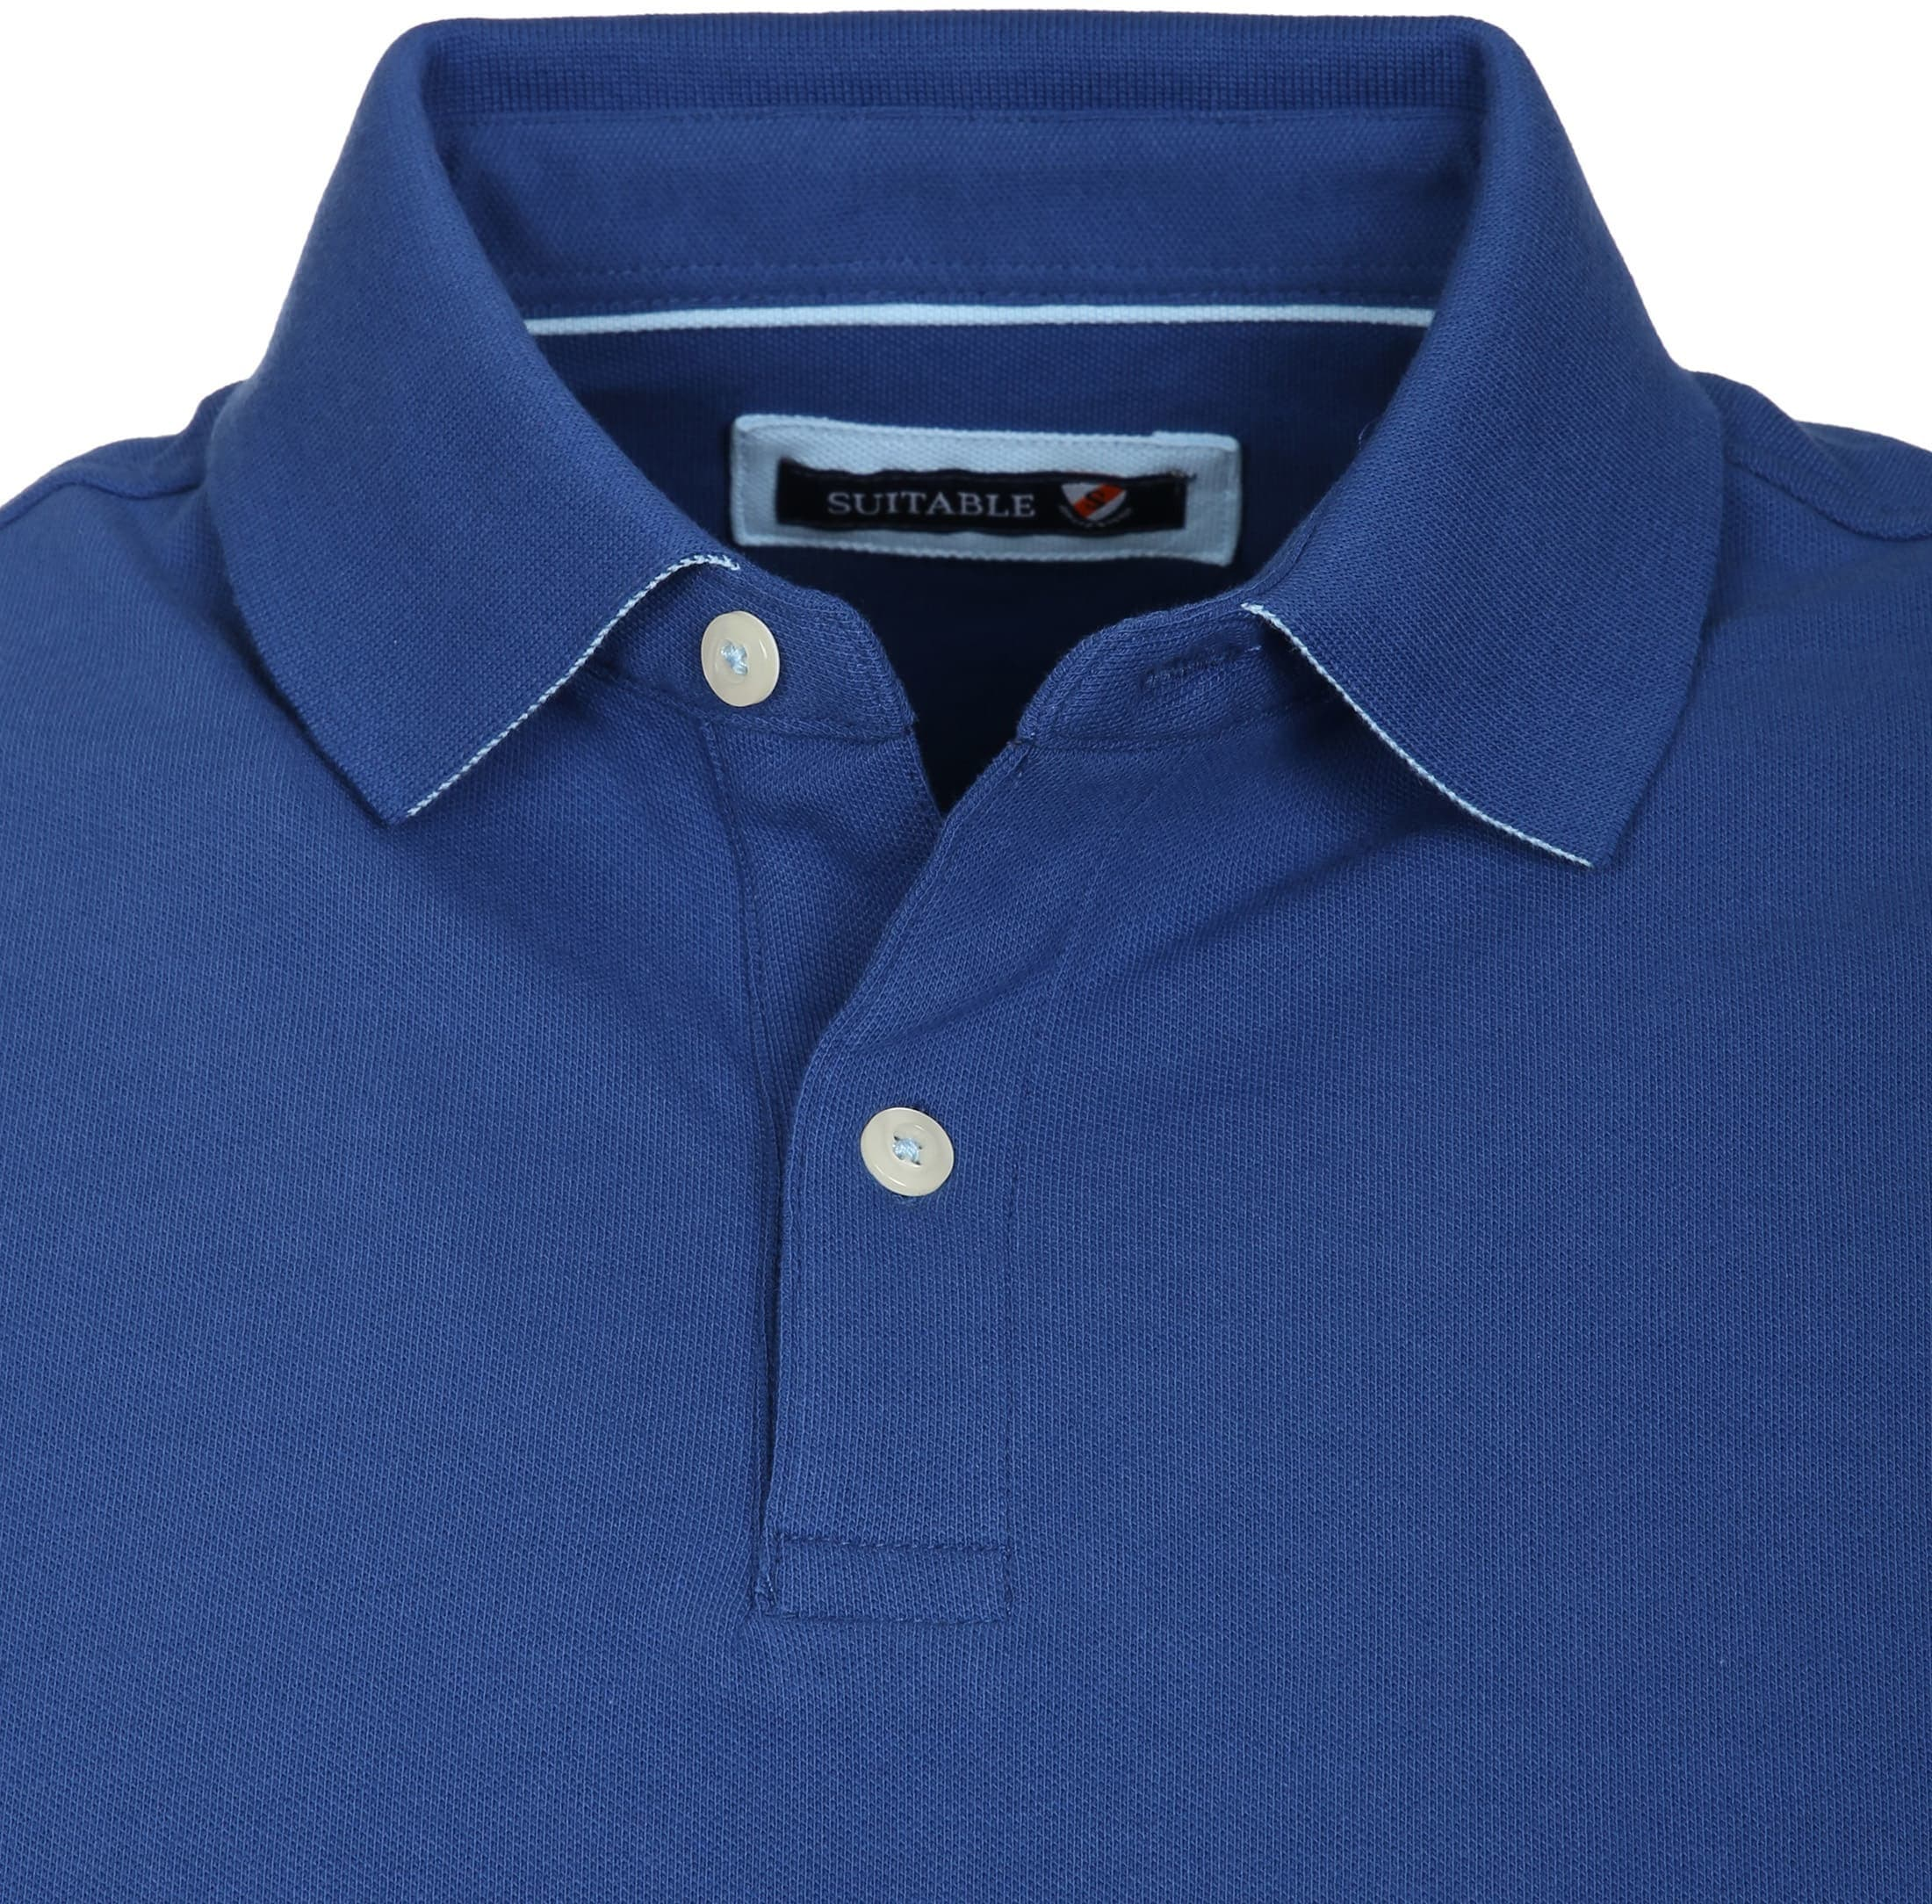 Suitable Polo Basic Royal Blauw foto 1